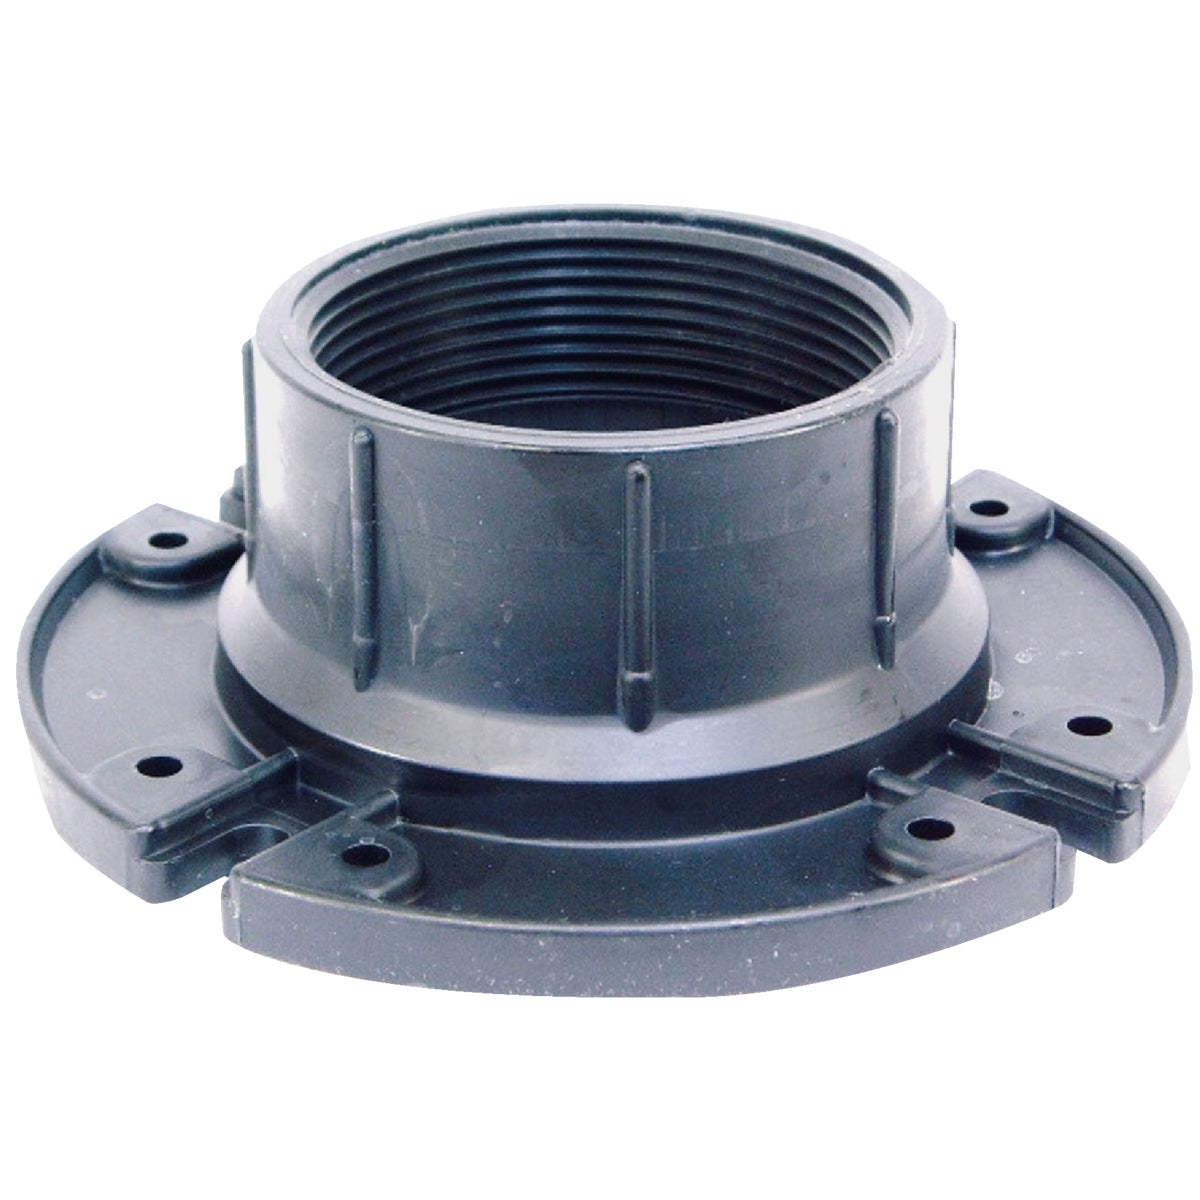 "3"" COMMODE FLANGE - P-111C by U S Hardware"